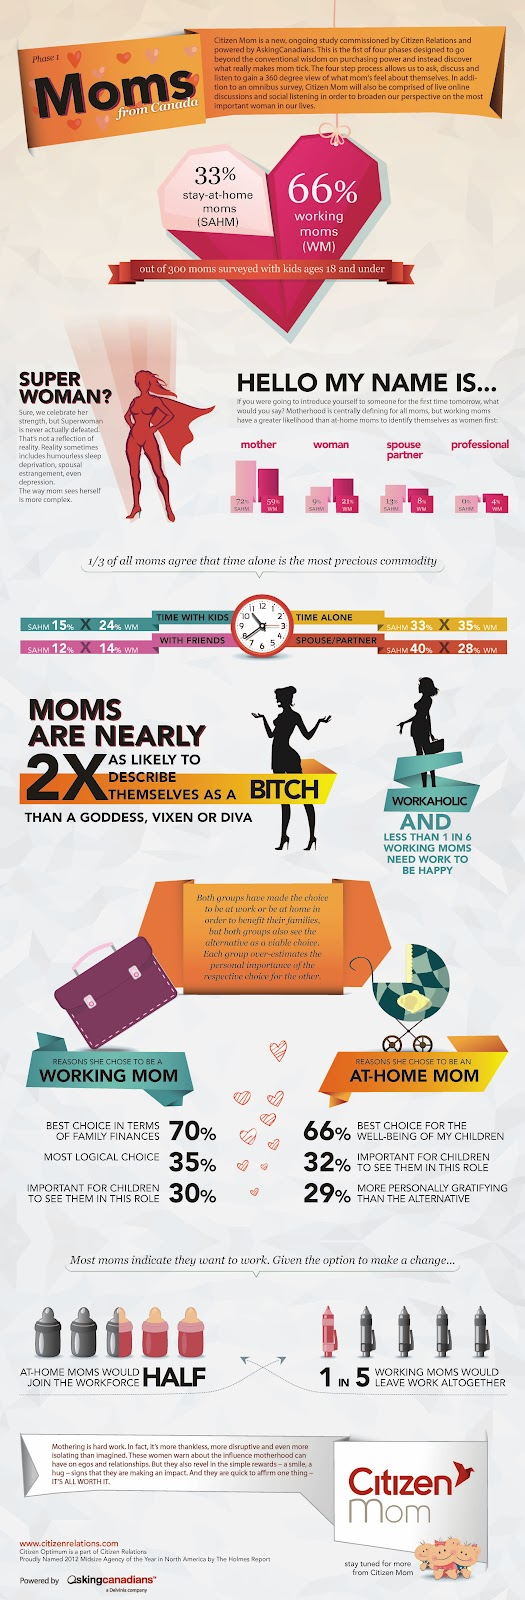 An Infographic featuring Insights into Canadian Moms